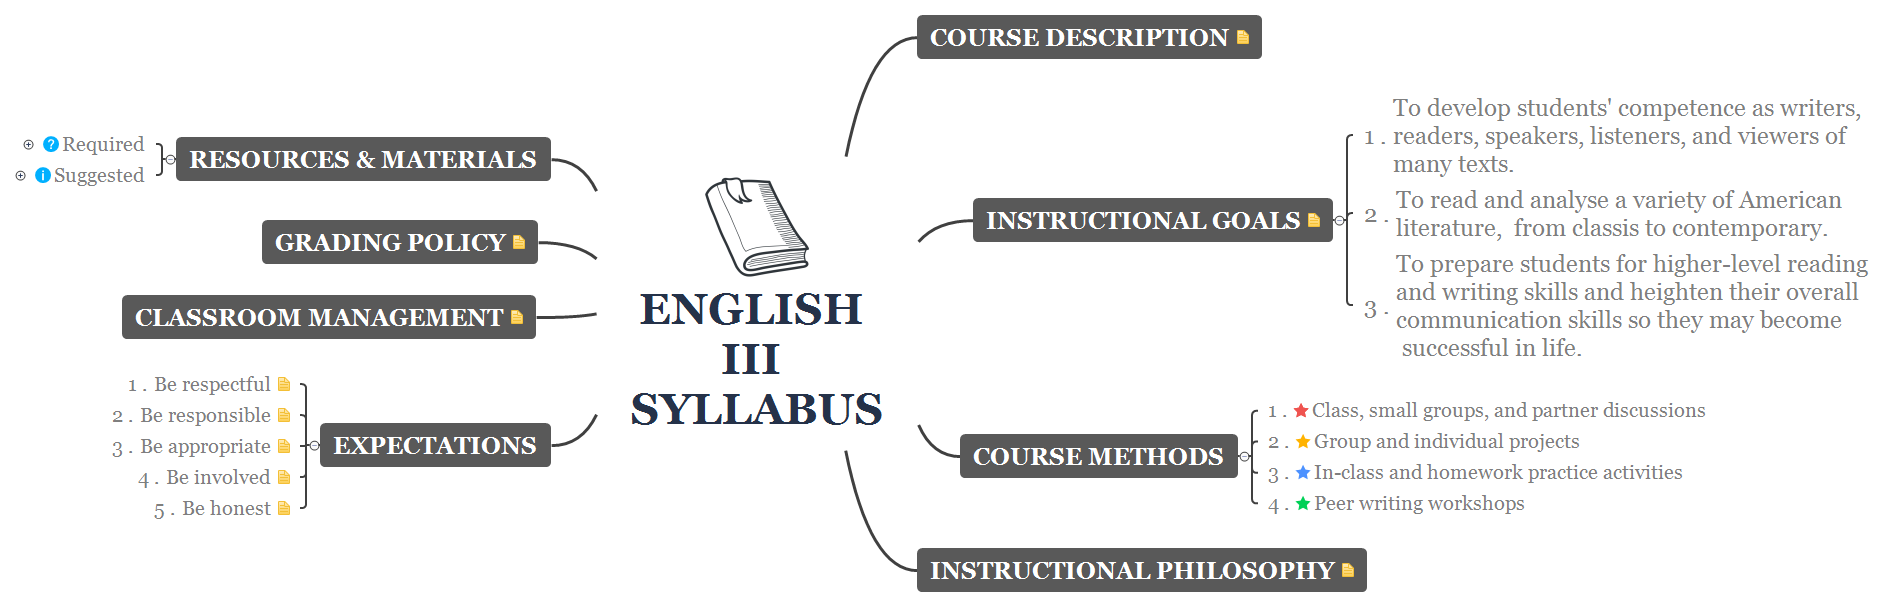 English III Syllabus